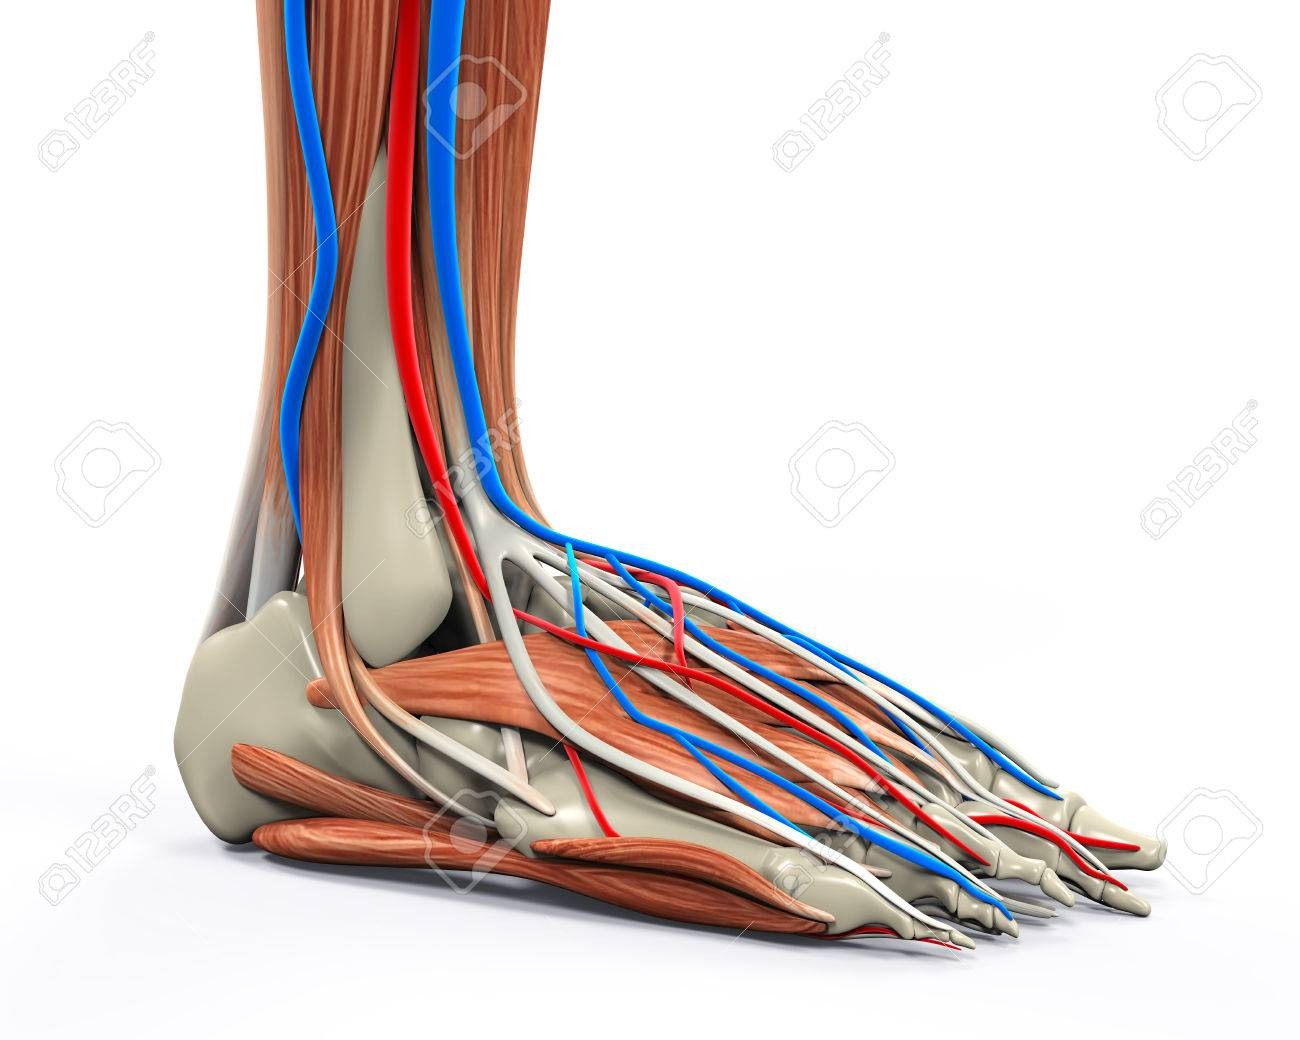 Human Foot Muscles Anatomy Stock Photo, Picture And Royalty Free ...